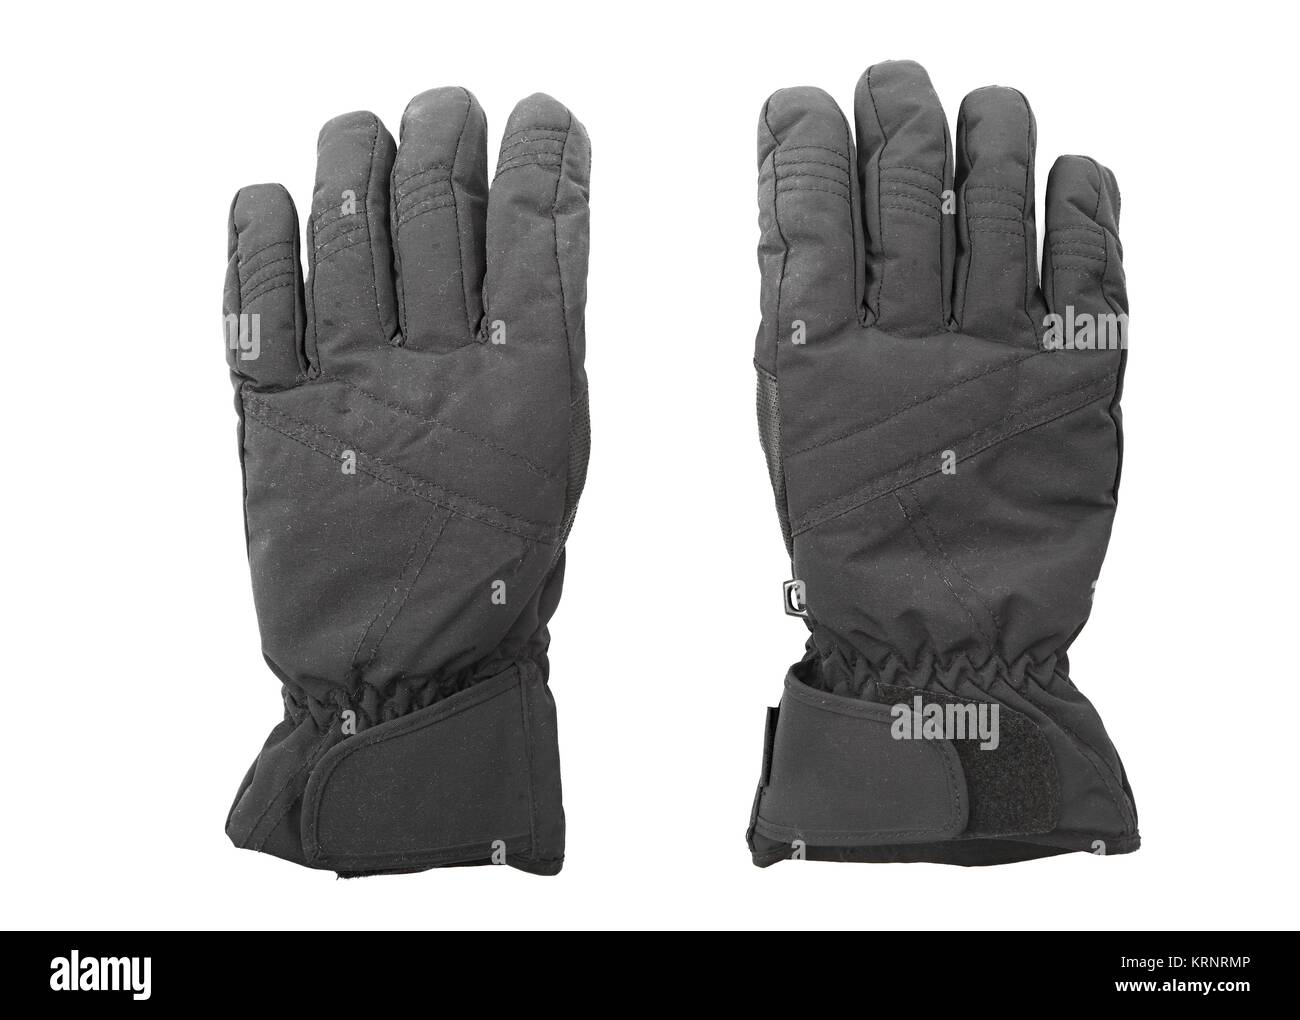 Gloves - Stock Image